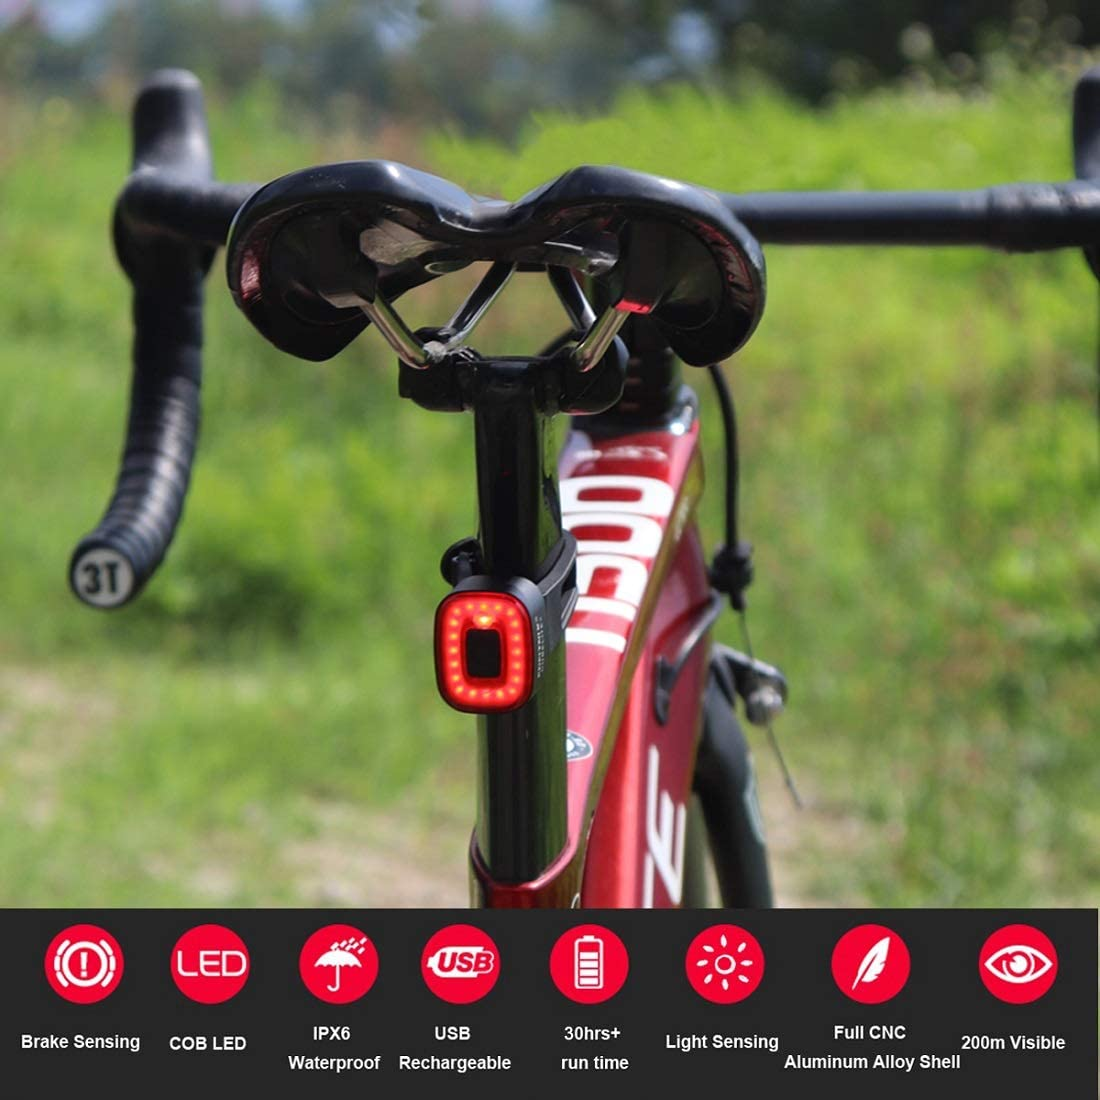 Xlite Cube Smart Bike Brake Sensing Tail Light Ultra Bright,Bicycle Rear Night Light Rechargeable Auto On Off, IPX6 Waterproof Lights, High Intensity Accessories Fits All Mountain Road Bike